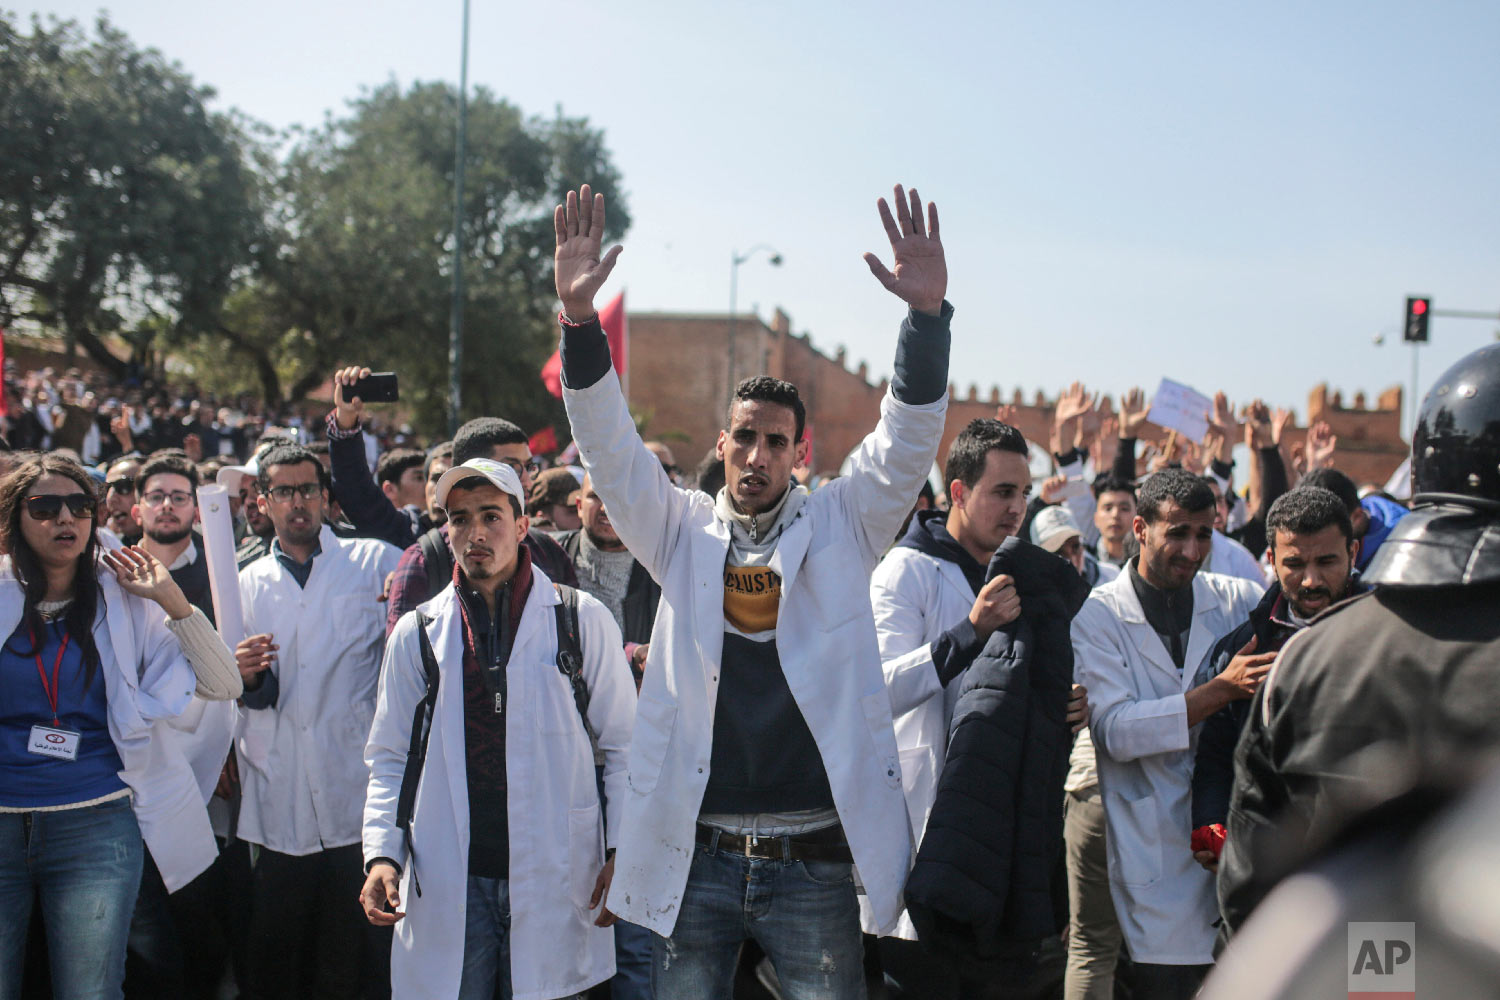 Teachers chant slogans and gesture during a demonstration in Rabat, Morocco, Feb. 20, 2019. (AP Photo/Mosa'ab Elshamy)